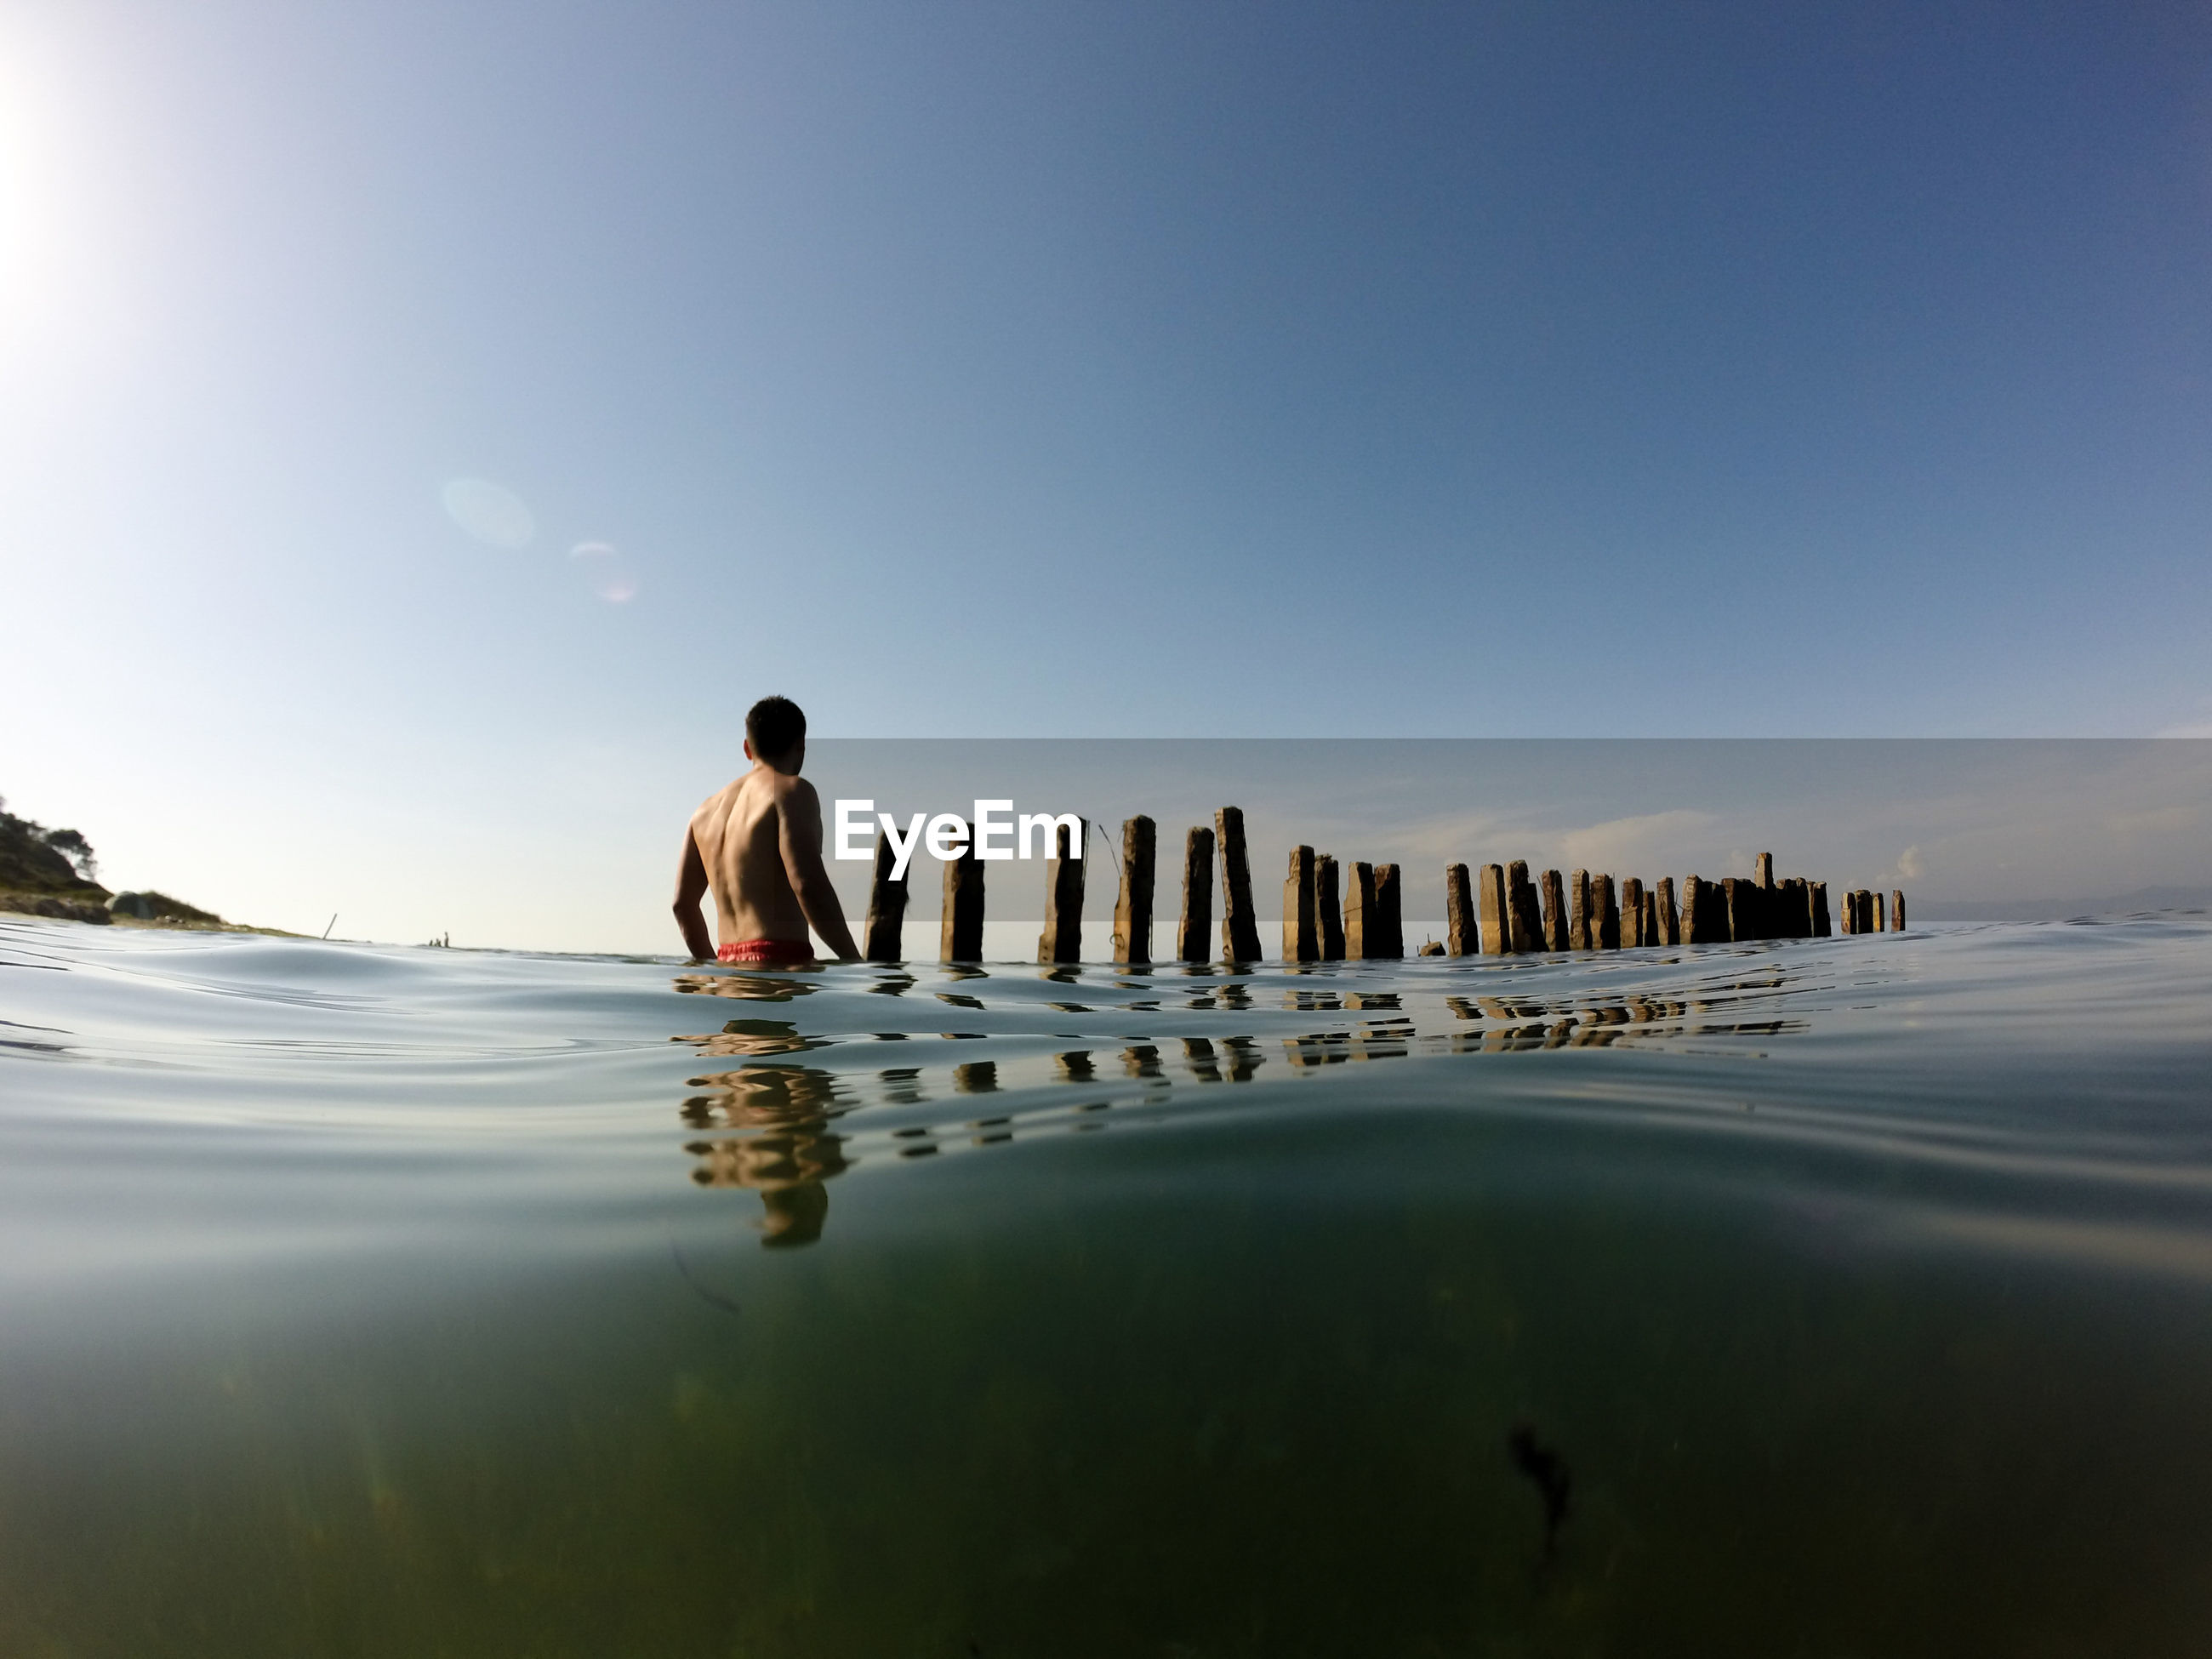 Water surface shot of shirtless man wading in sea against sky